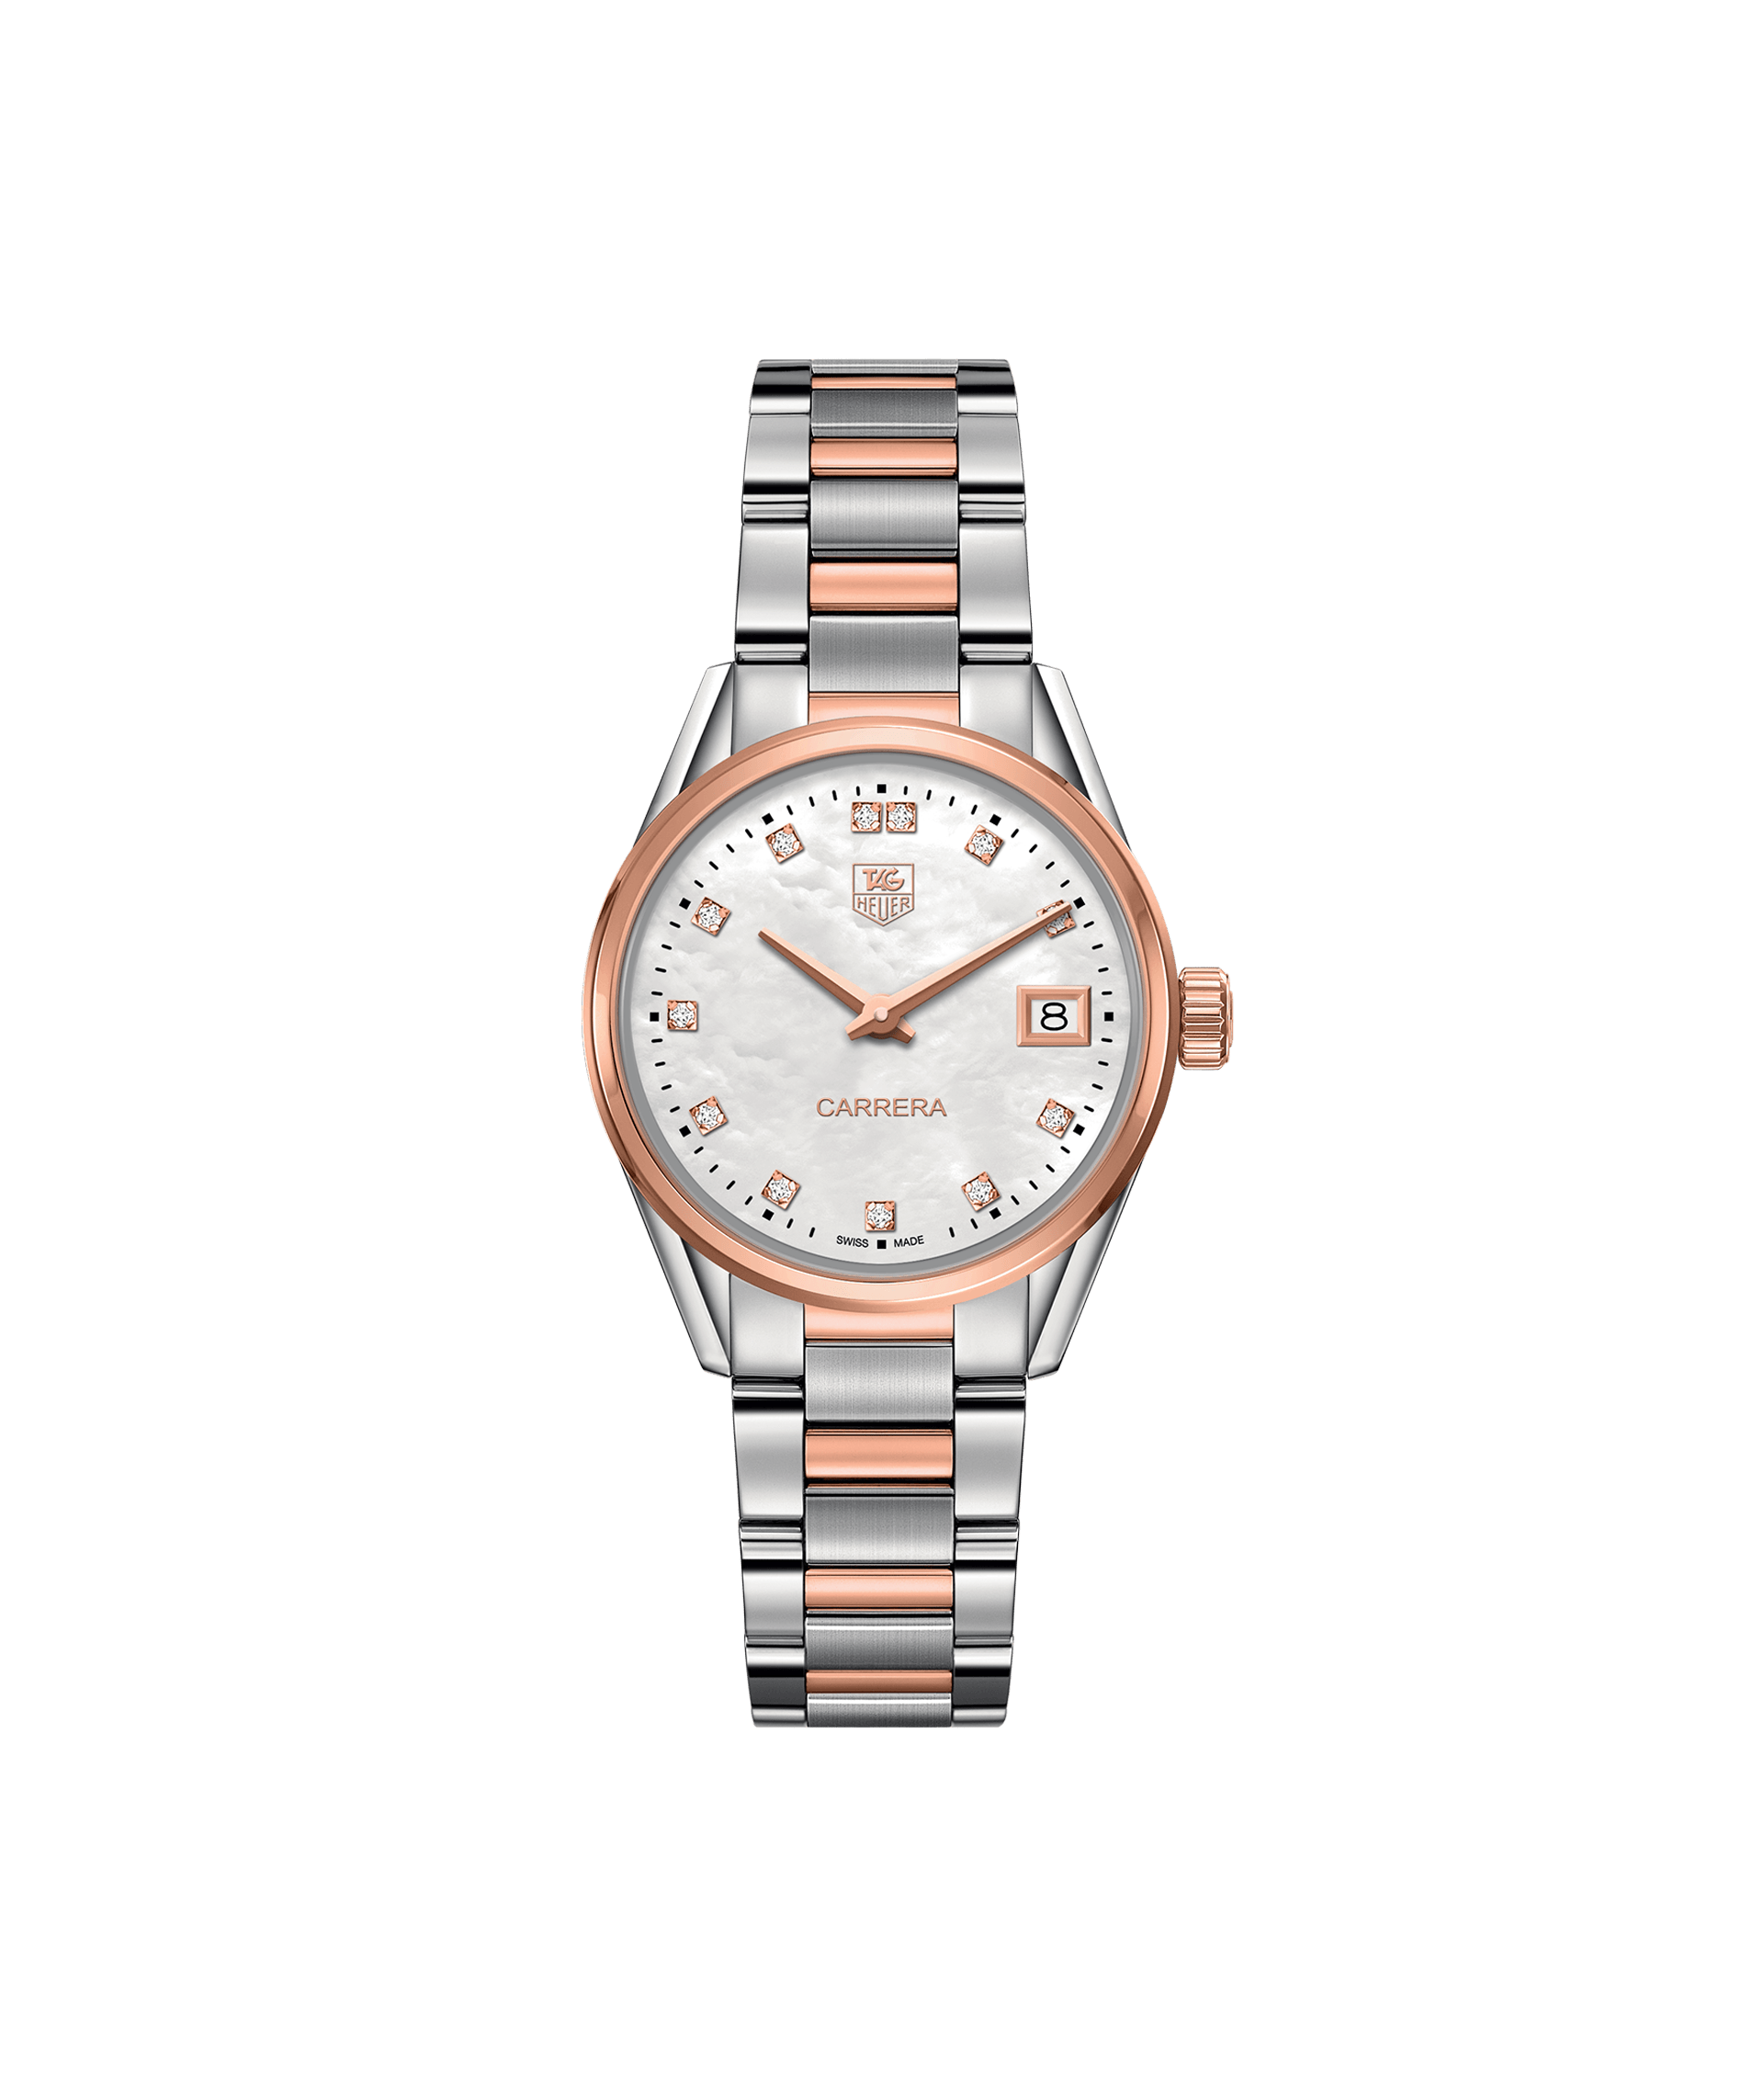 TAG HEUER CARRERA 100m - 32mm - ROSE GOLD & DIAMONDS QUARTZ - WAR1352.BD0779